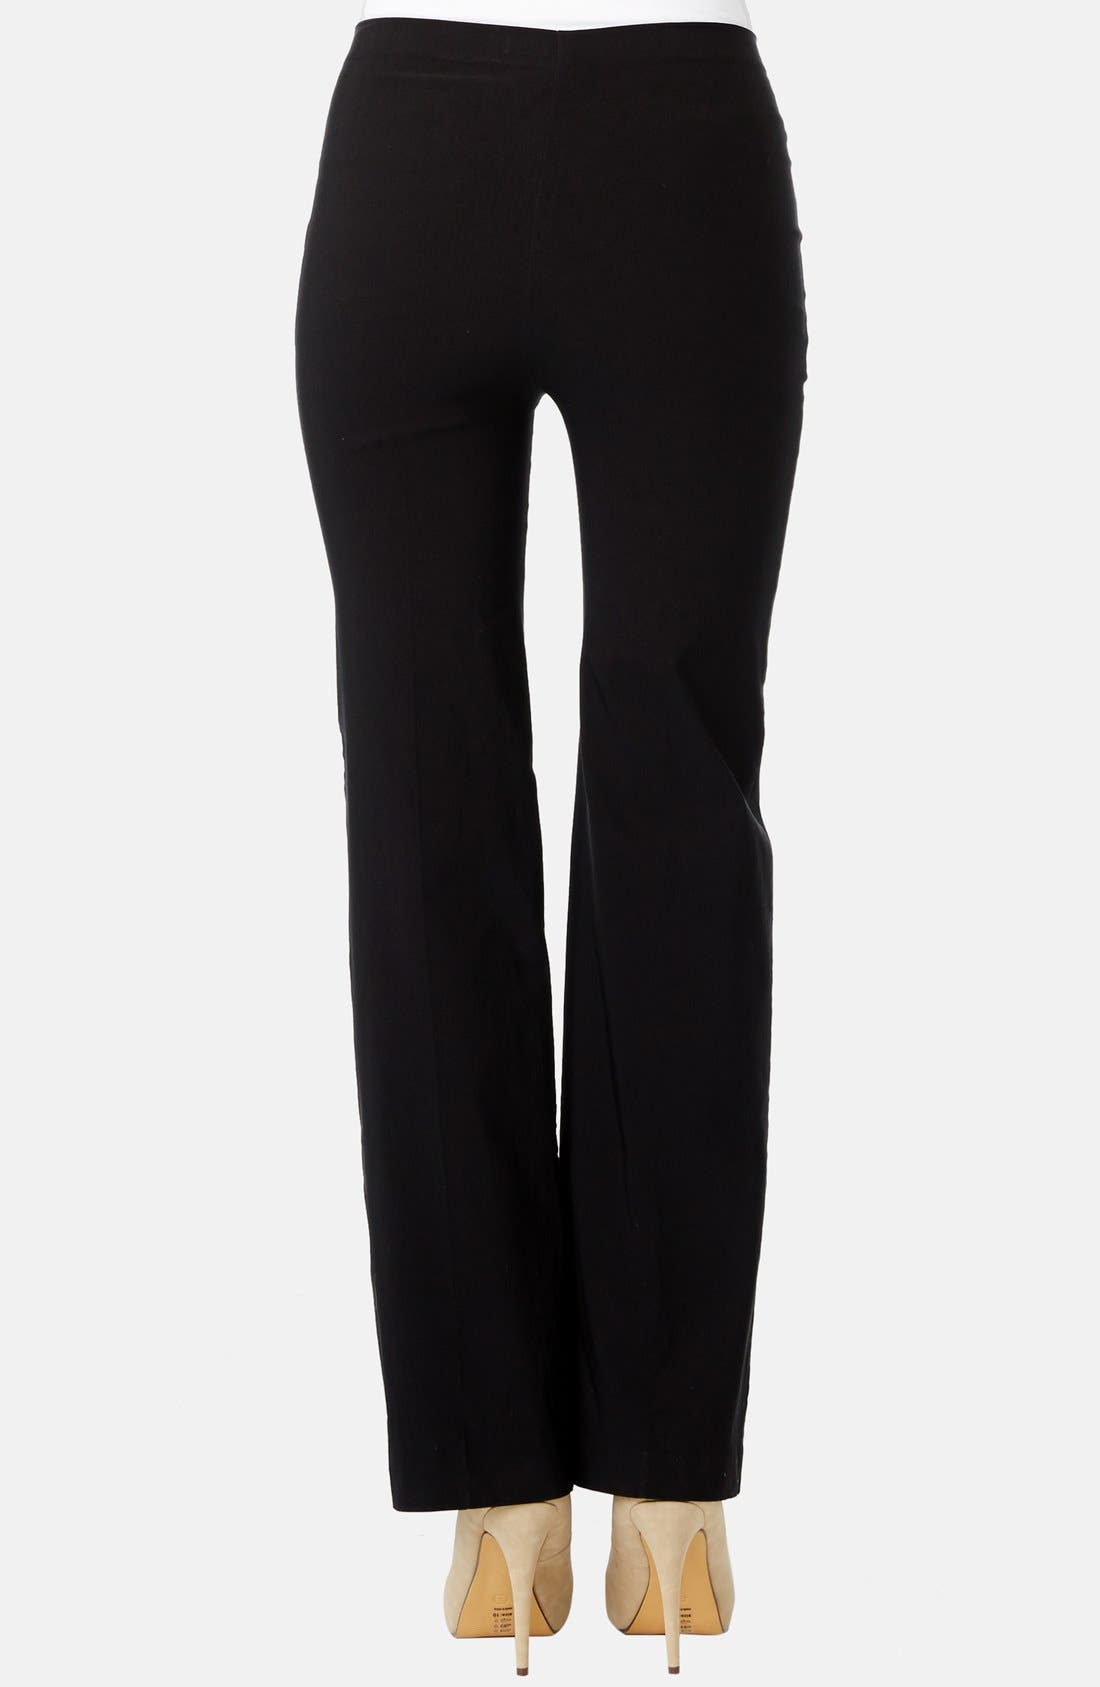 'Pret' Maternity Trousers,                             Alternate thumbnail 2, color,                             001